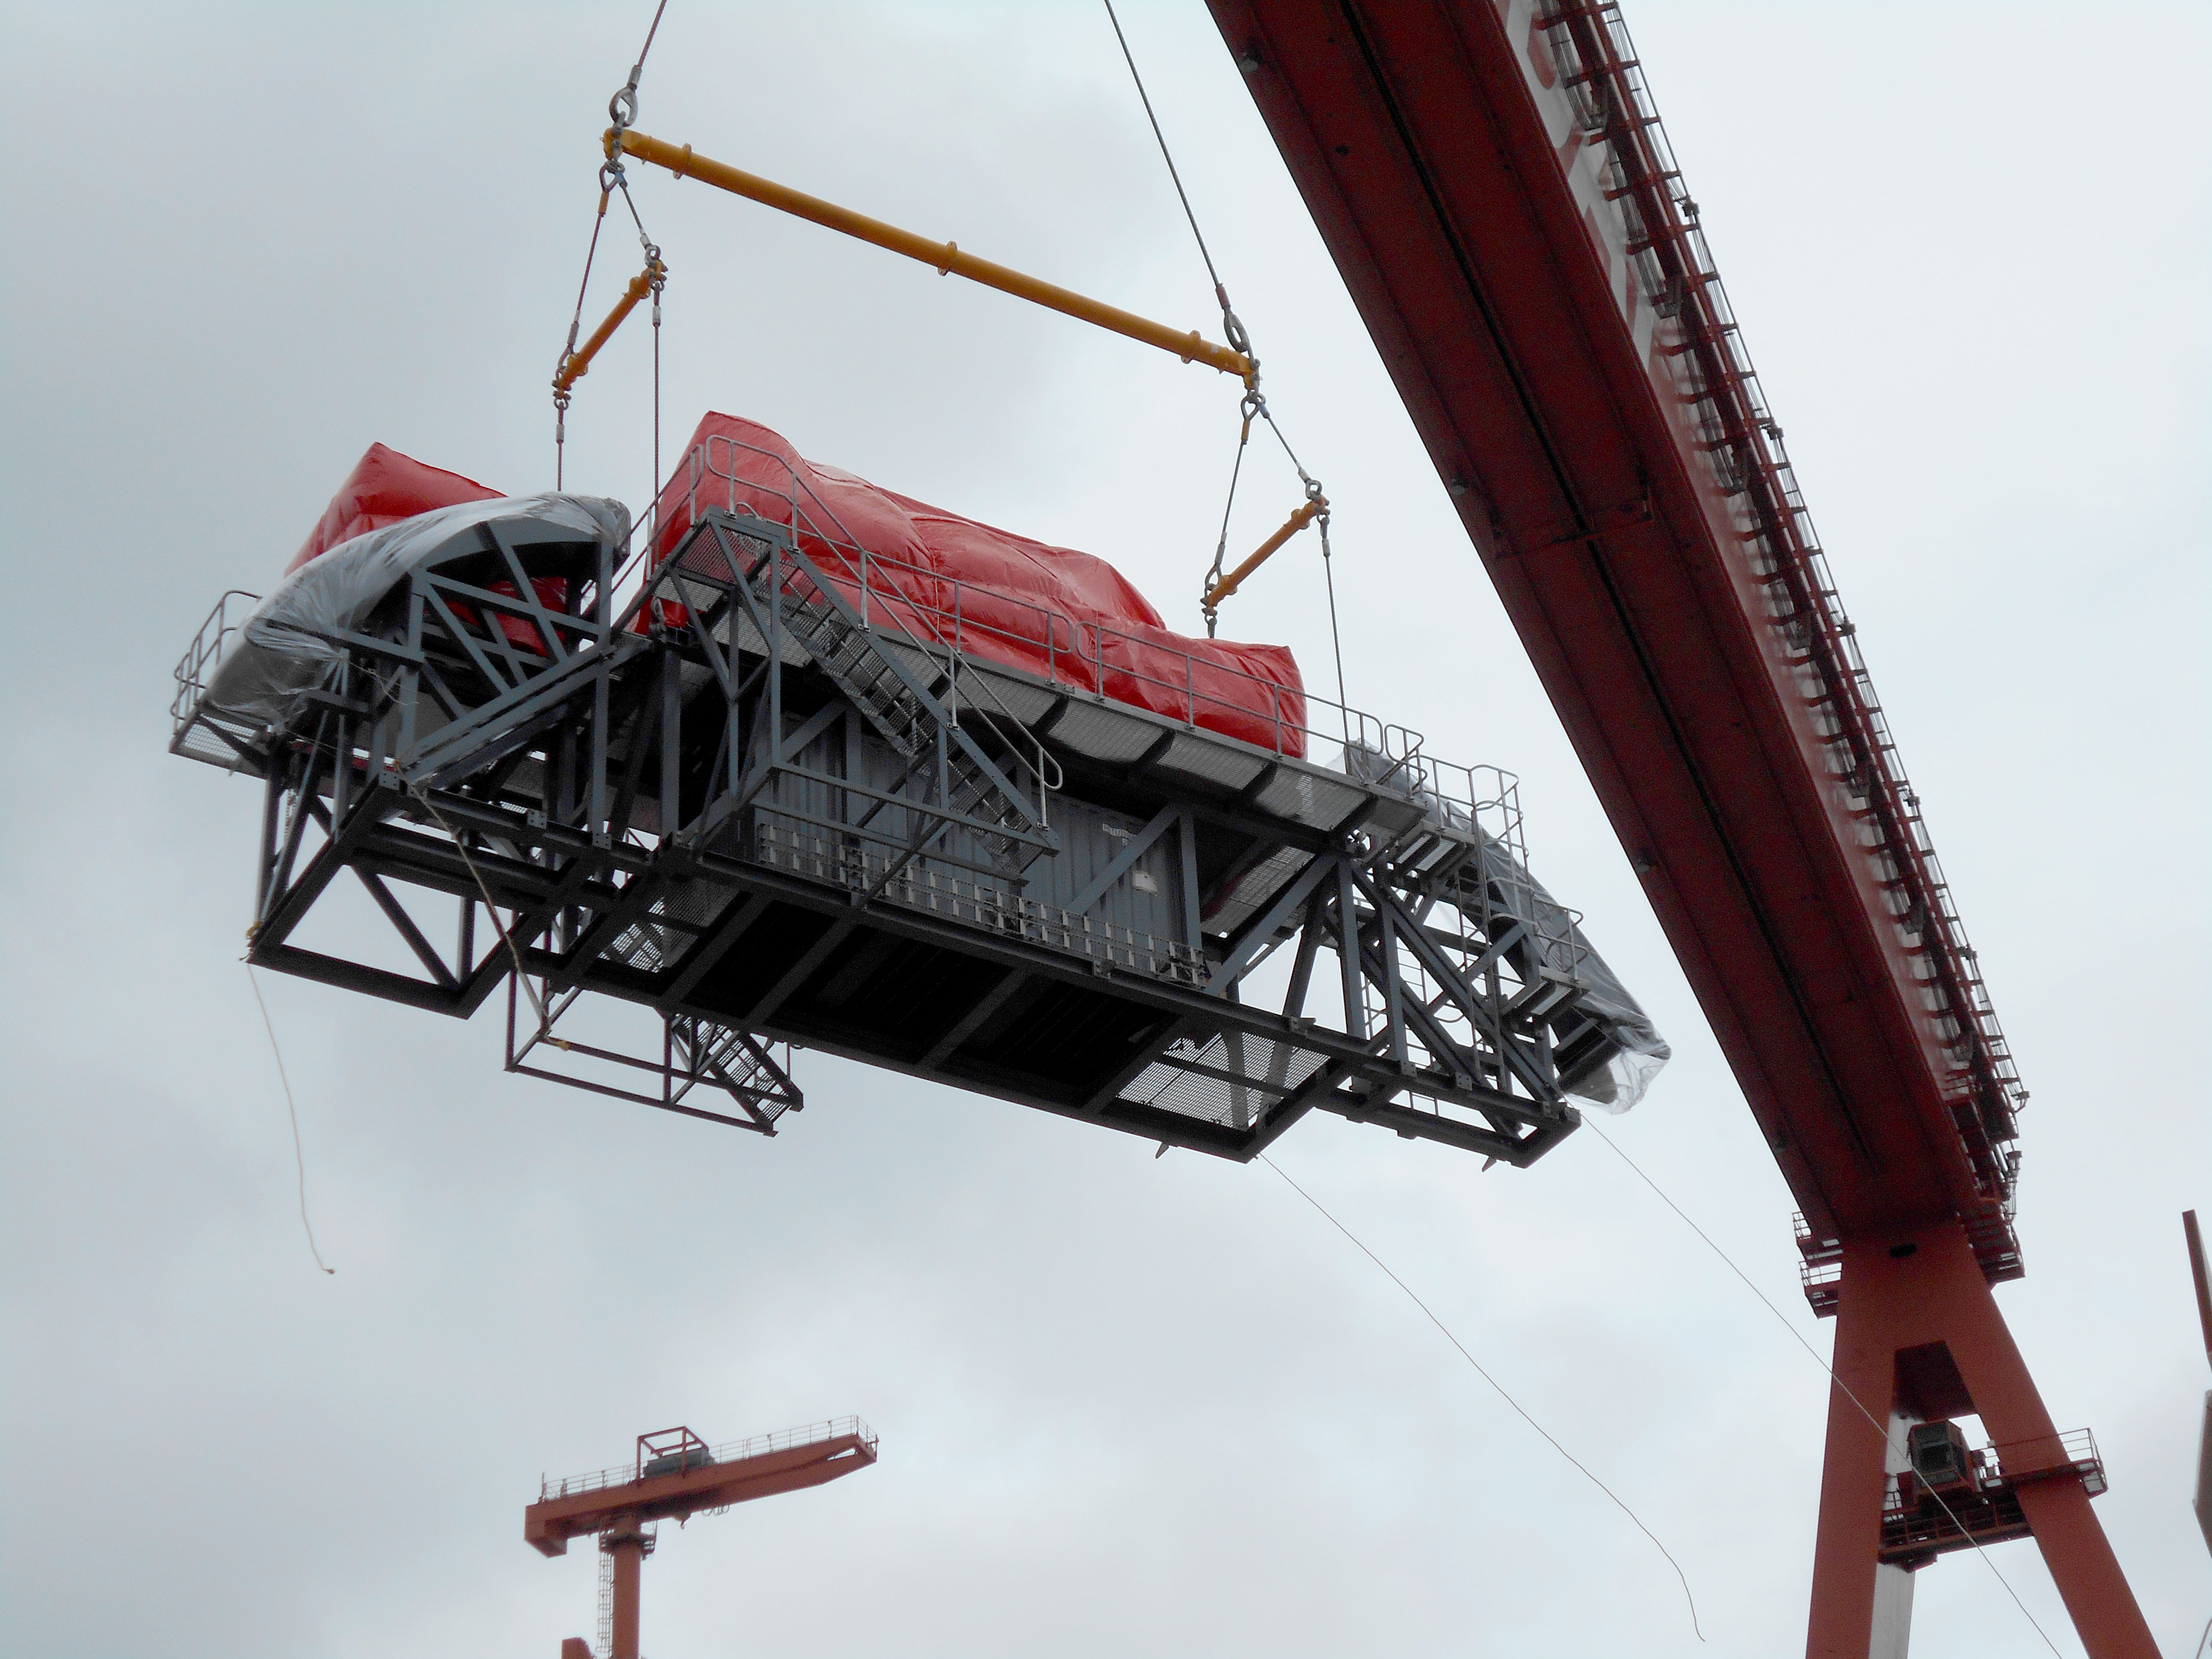 Modulift Spreader Beams in a one over two. Lifting a load of containers, power cabinets and a space frame